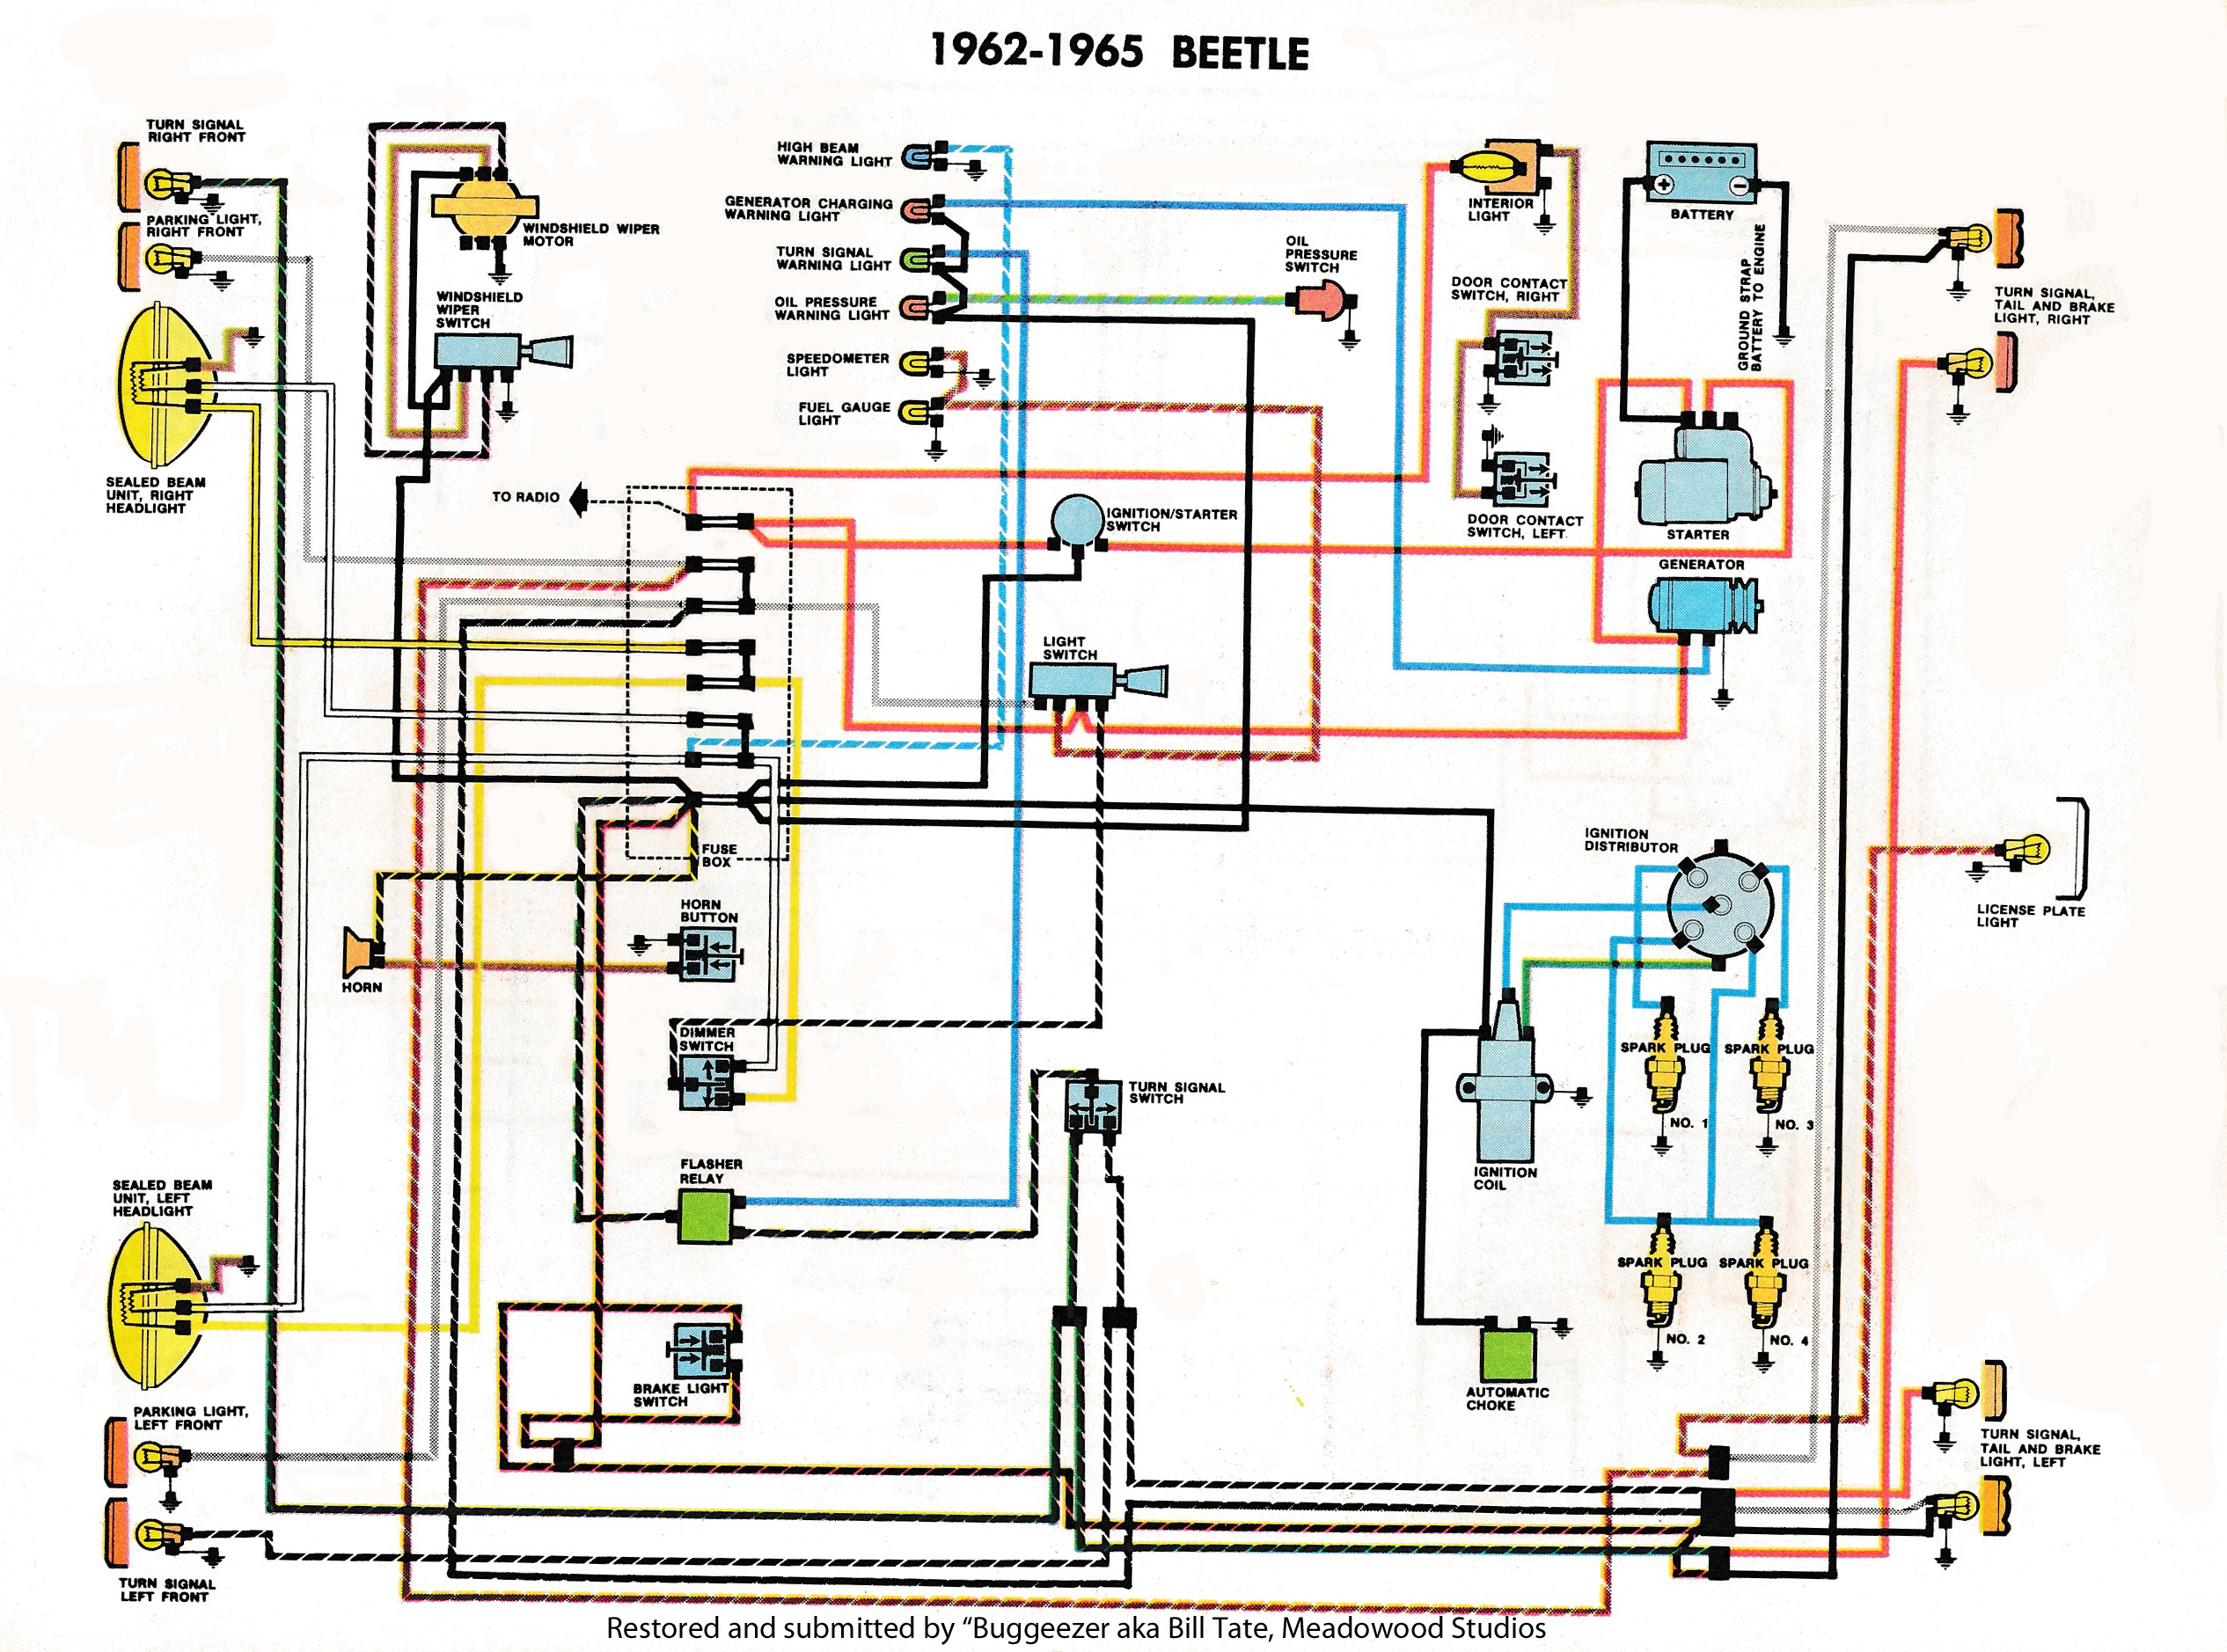 Type 1 Wiring Diagrams Wire Diagram 1990 Mustang Gt Convertible